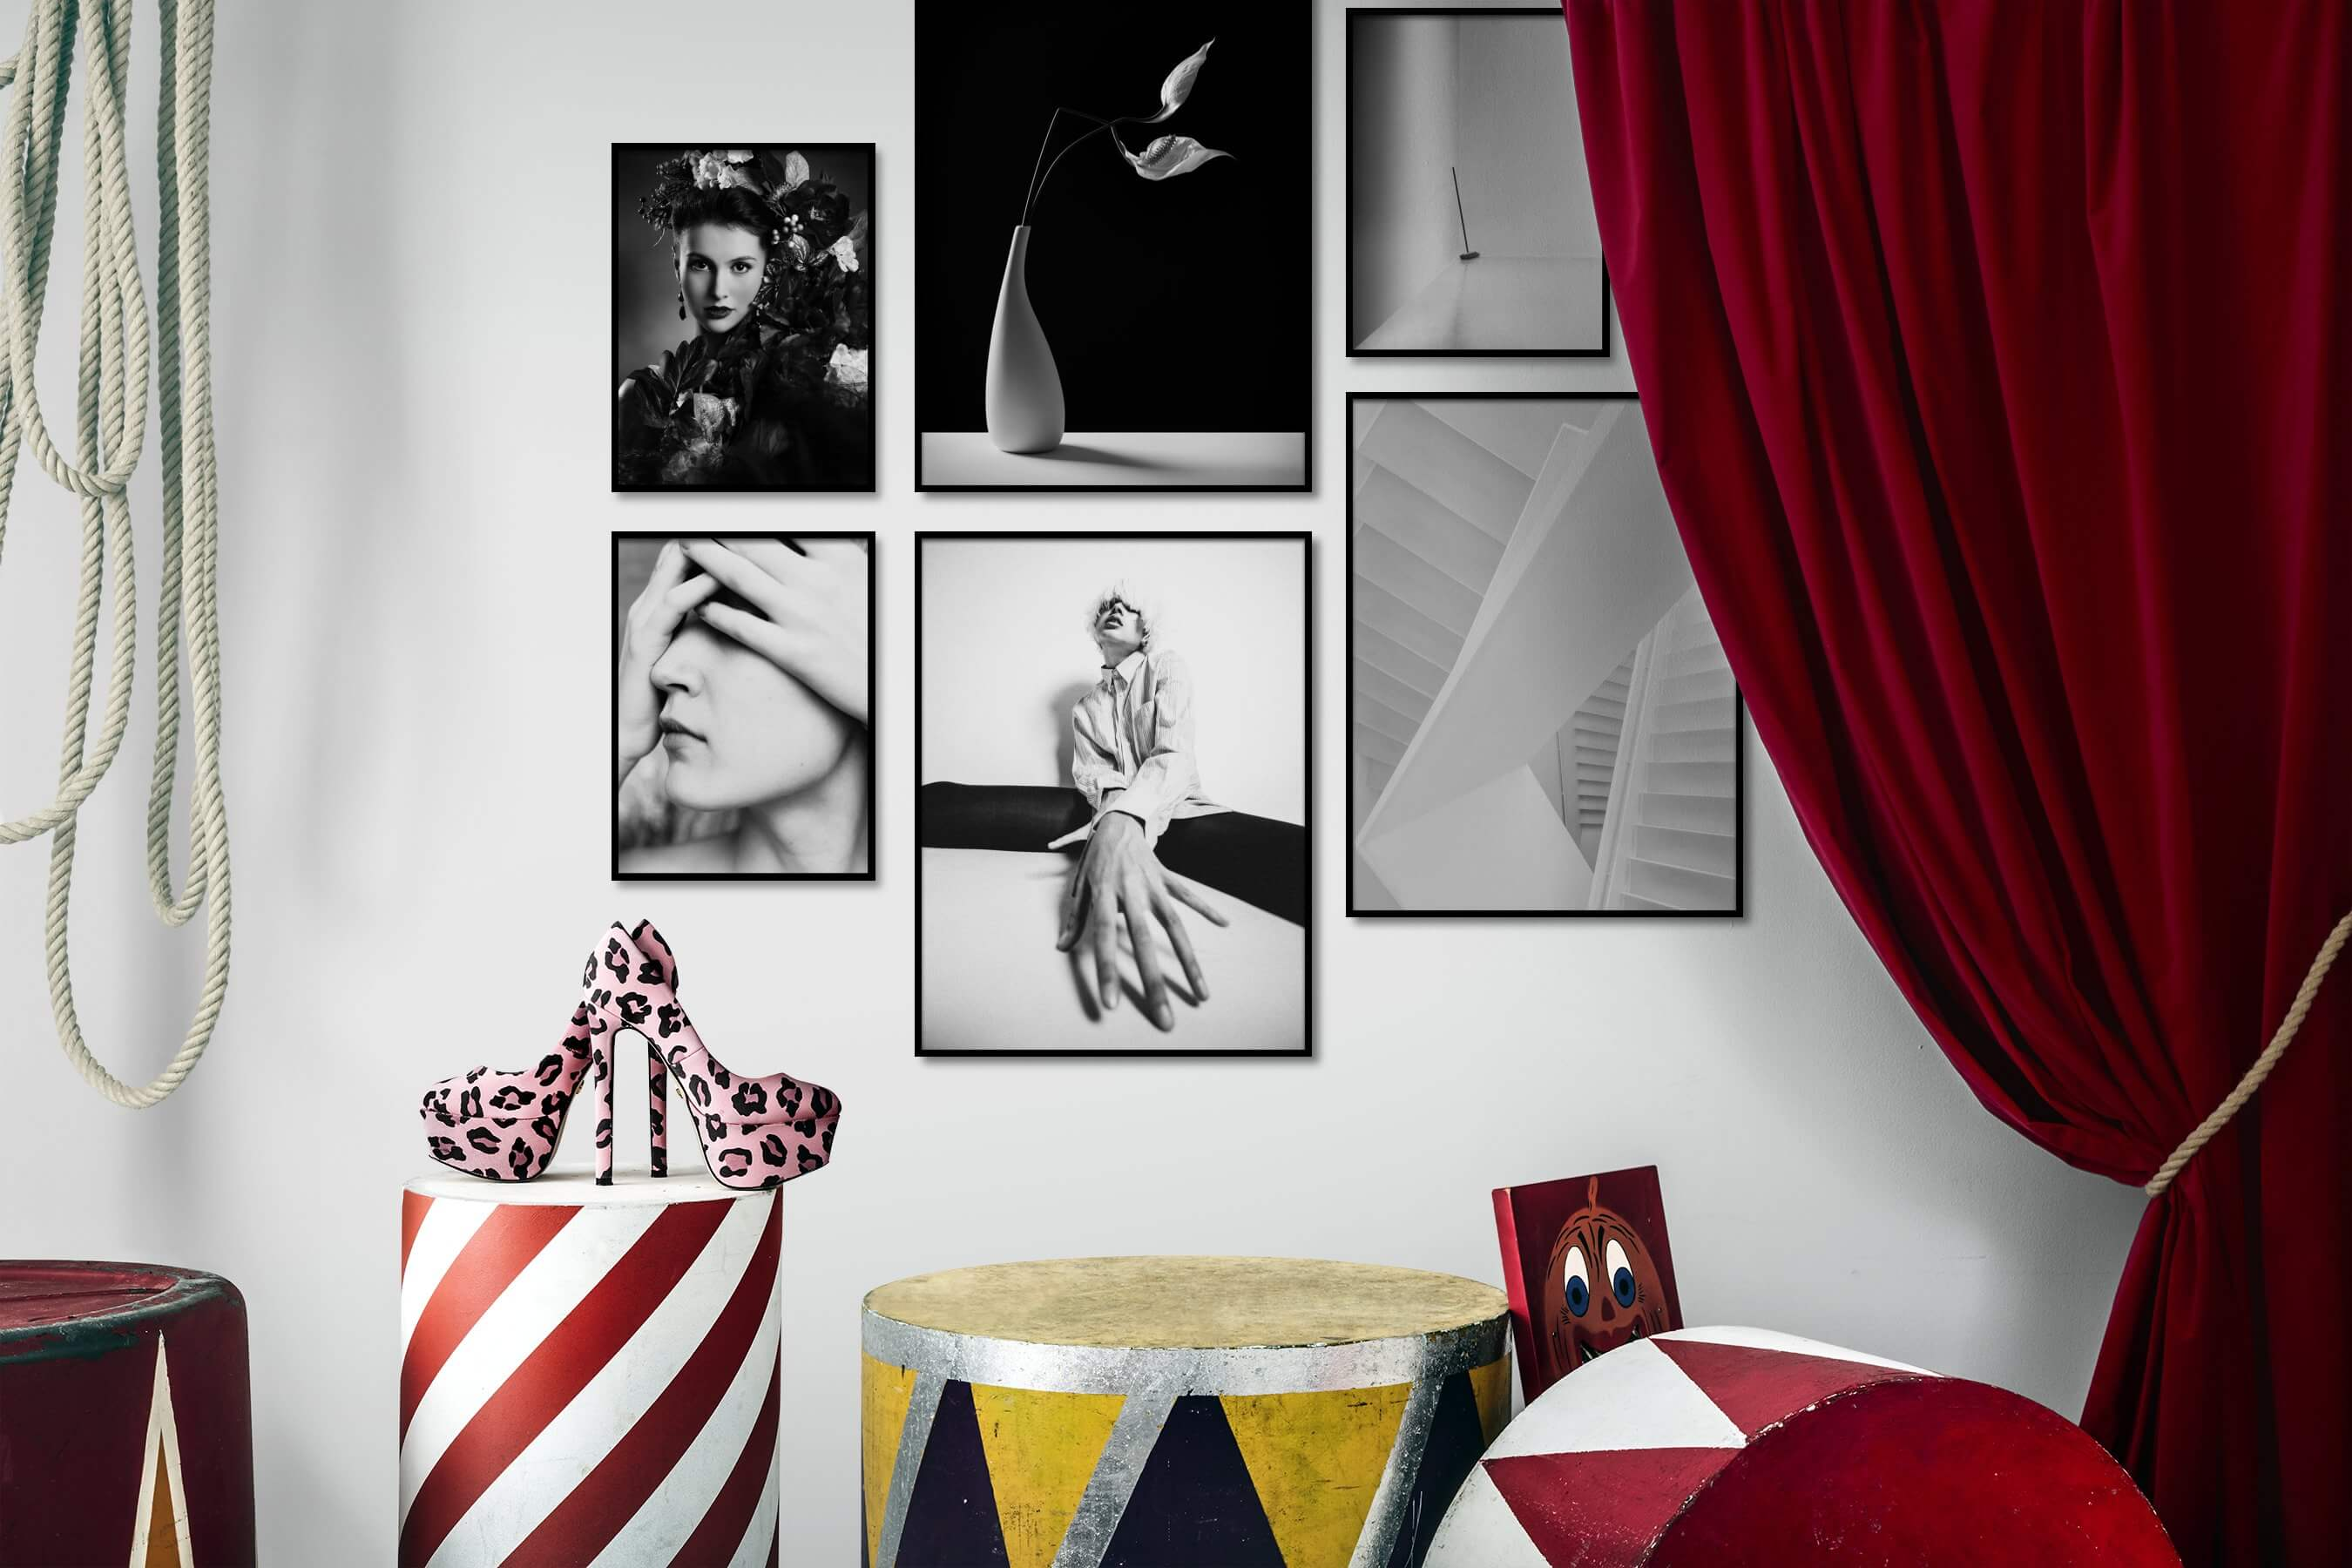 Gallery wall idea with six framed pictures arranged on a wall depicting Fashion & Beauty, Black & White, Dark Tones, For the Minimalist, Flowers & Plants, For the Moderate, and Bright Tones